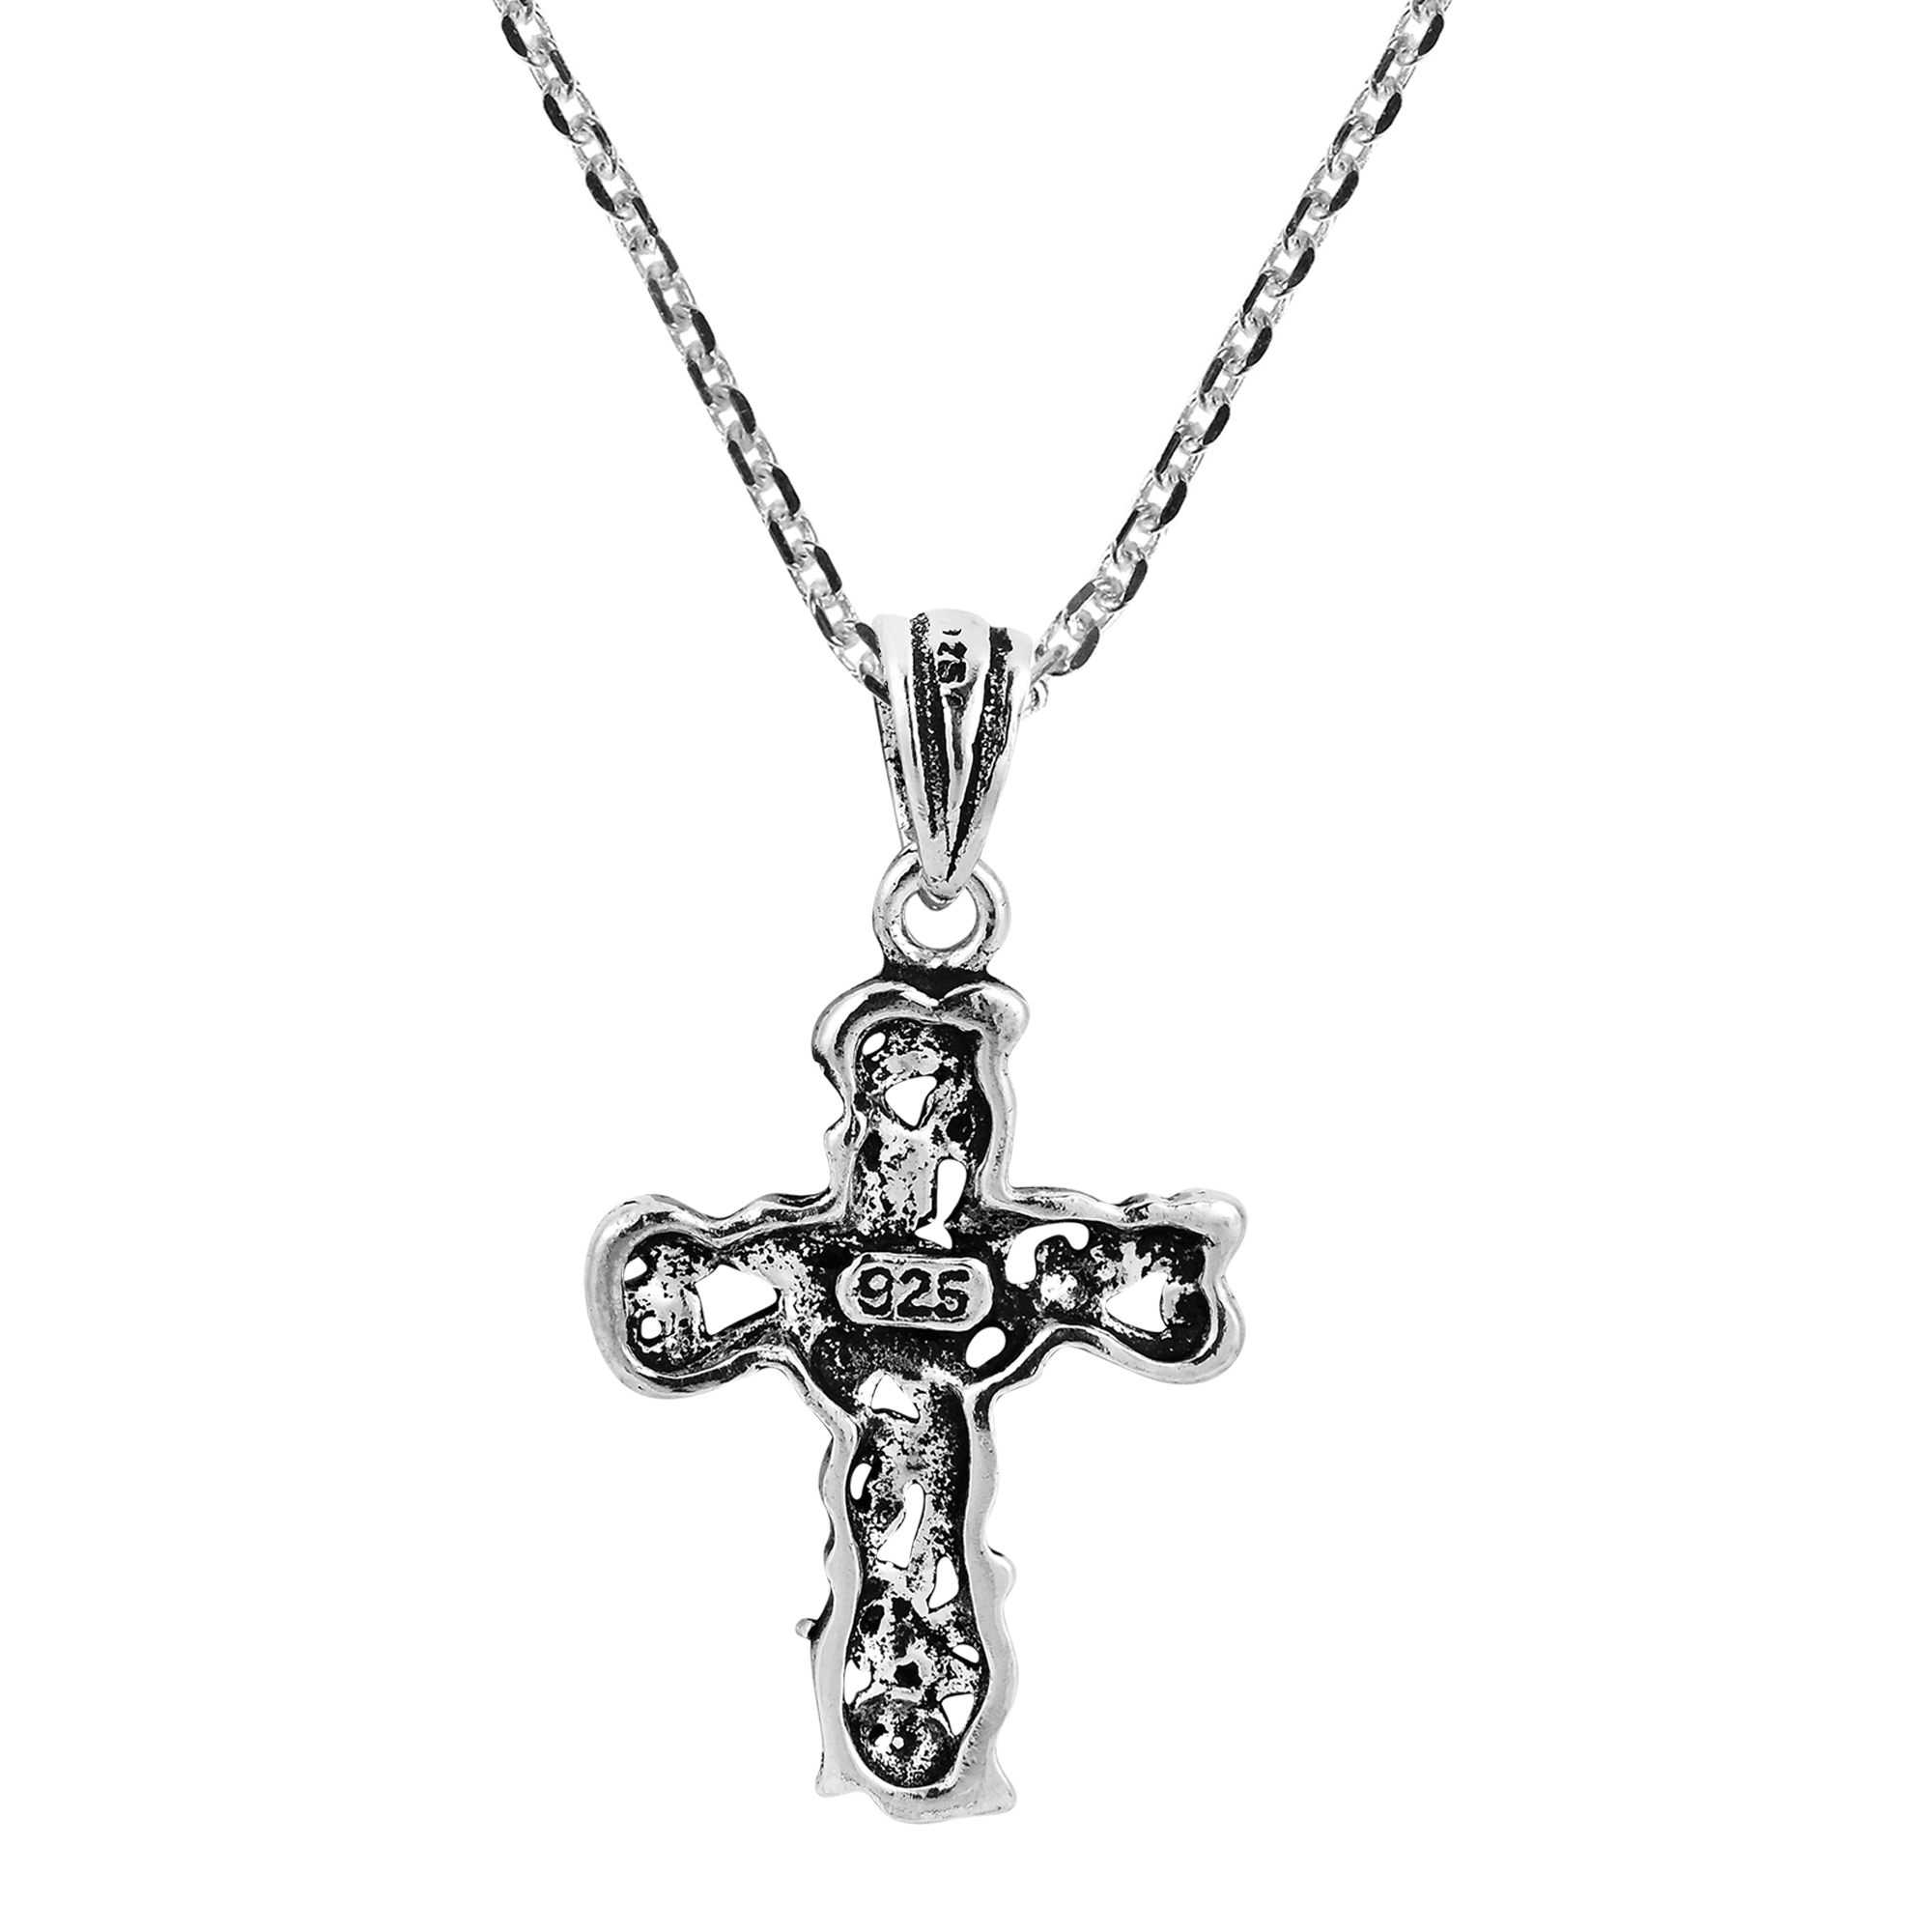 Detailed Filigree Swirl Cross Sterling Silver Dangle Necklace